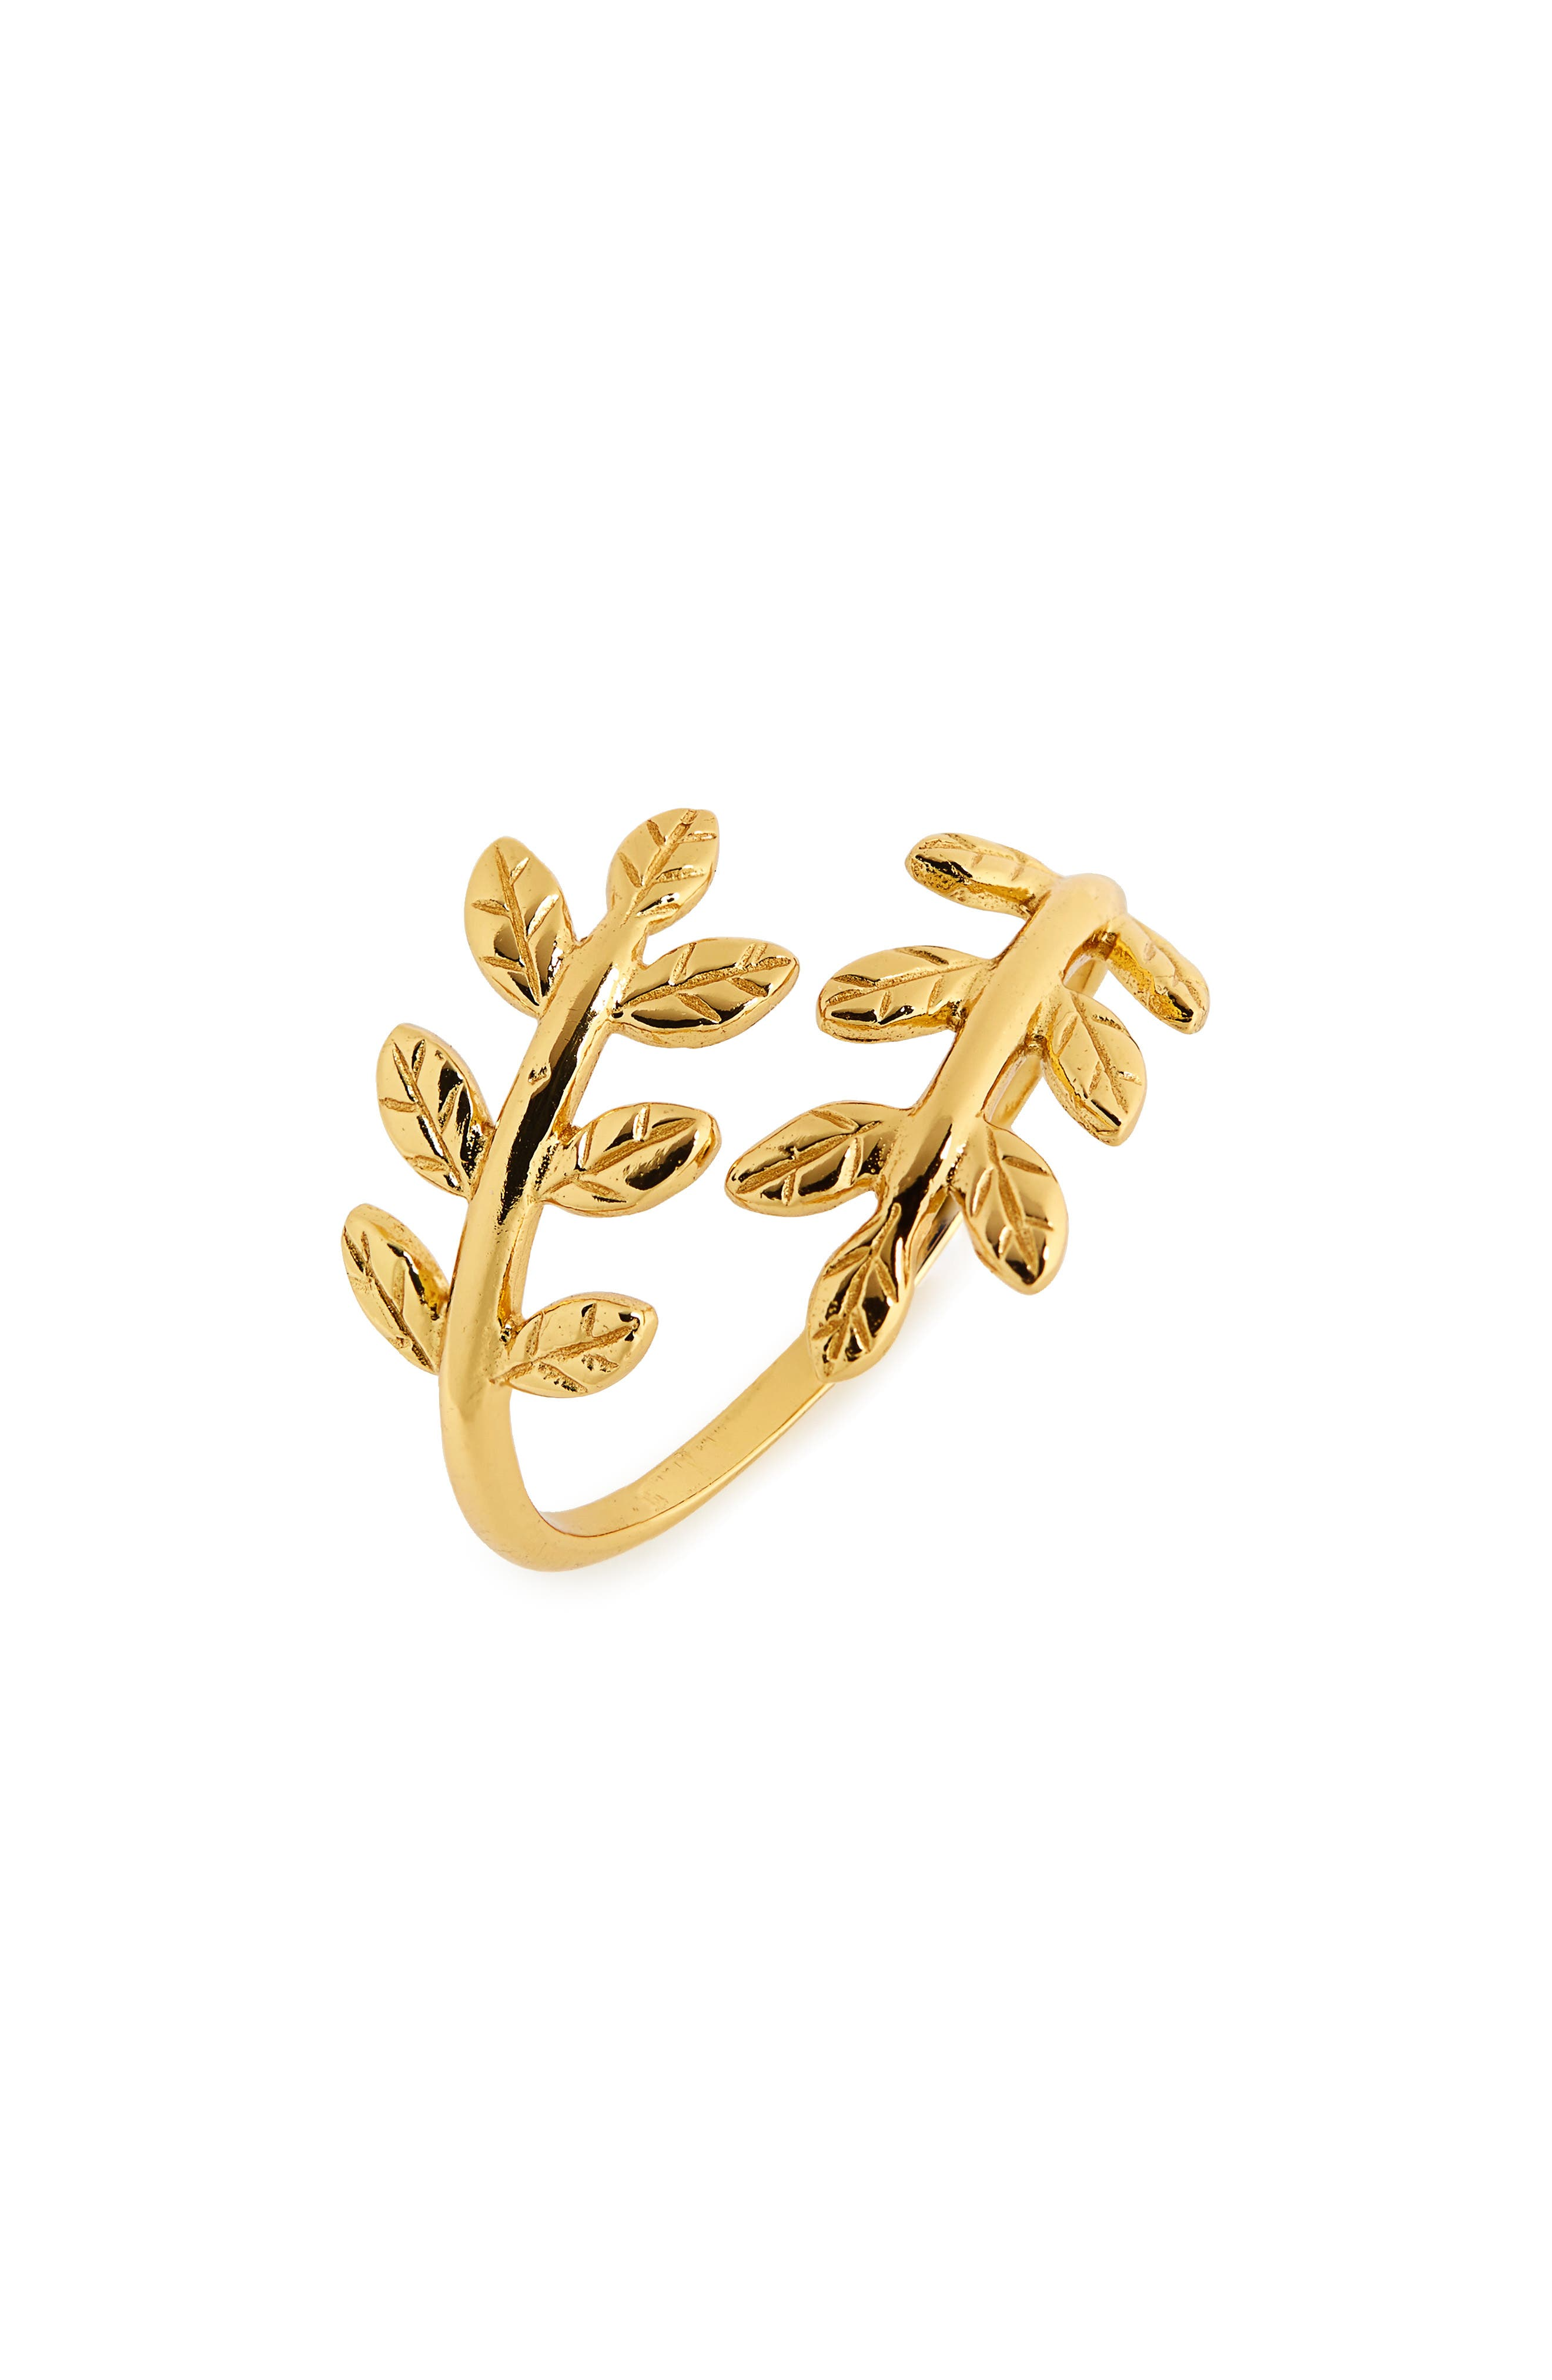 Foliage Open Ring,                             Main thumbnail 1, color,                             Gold